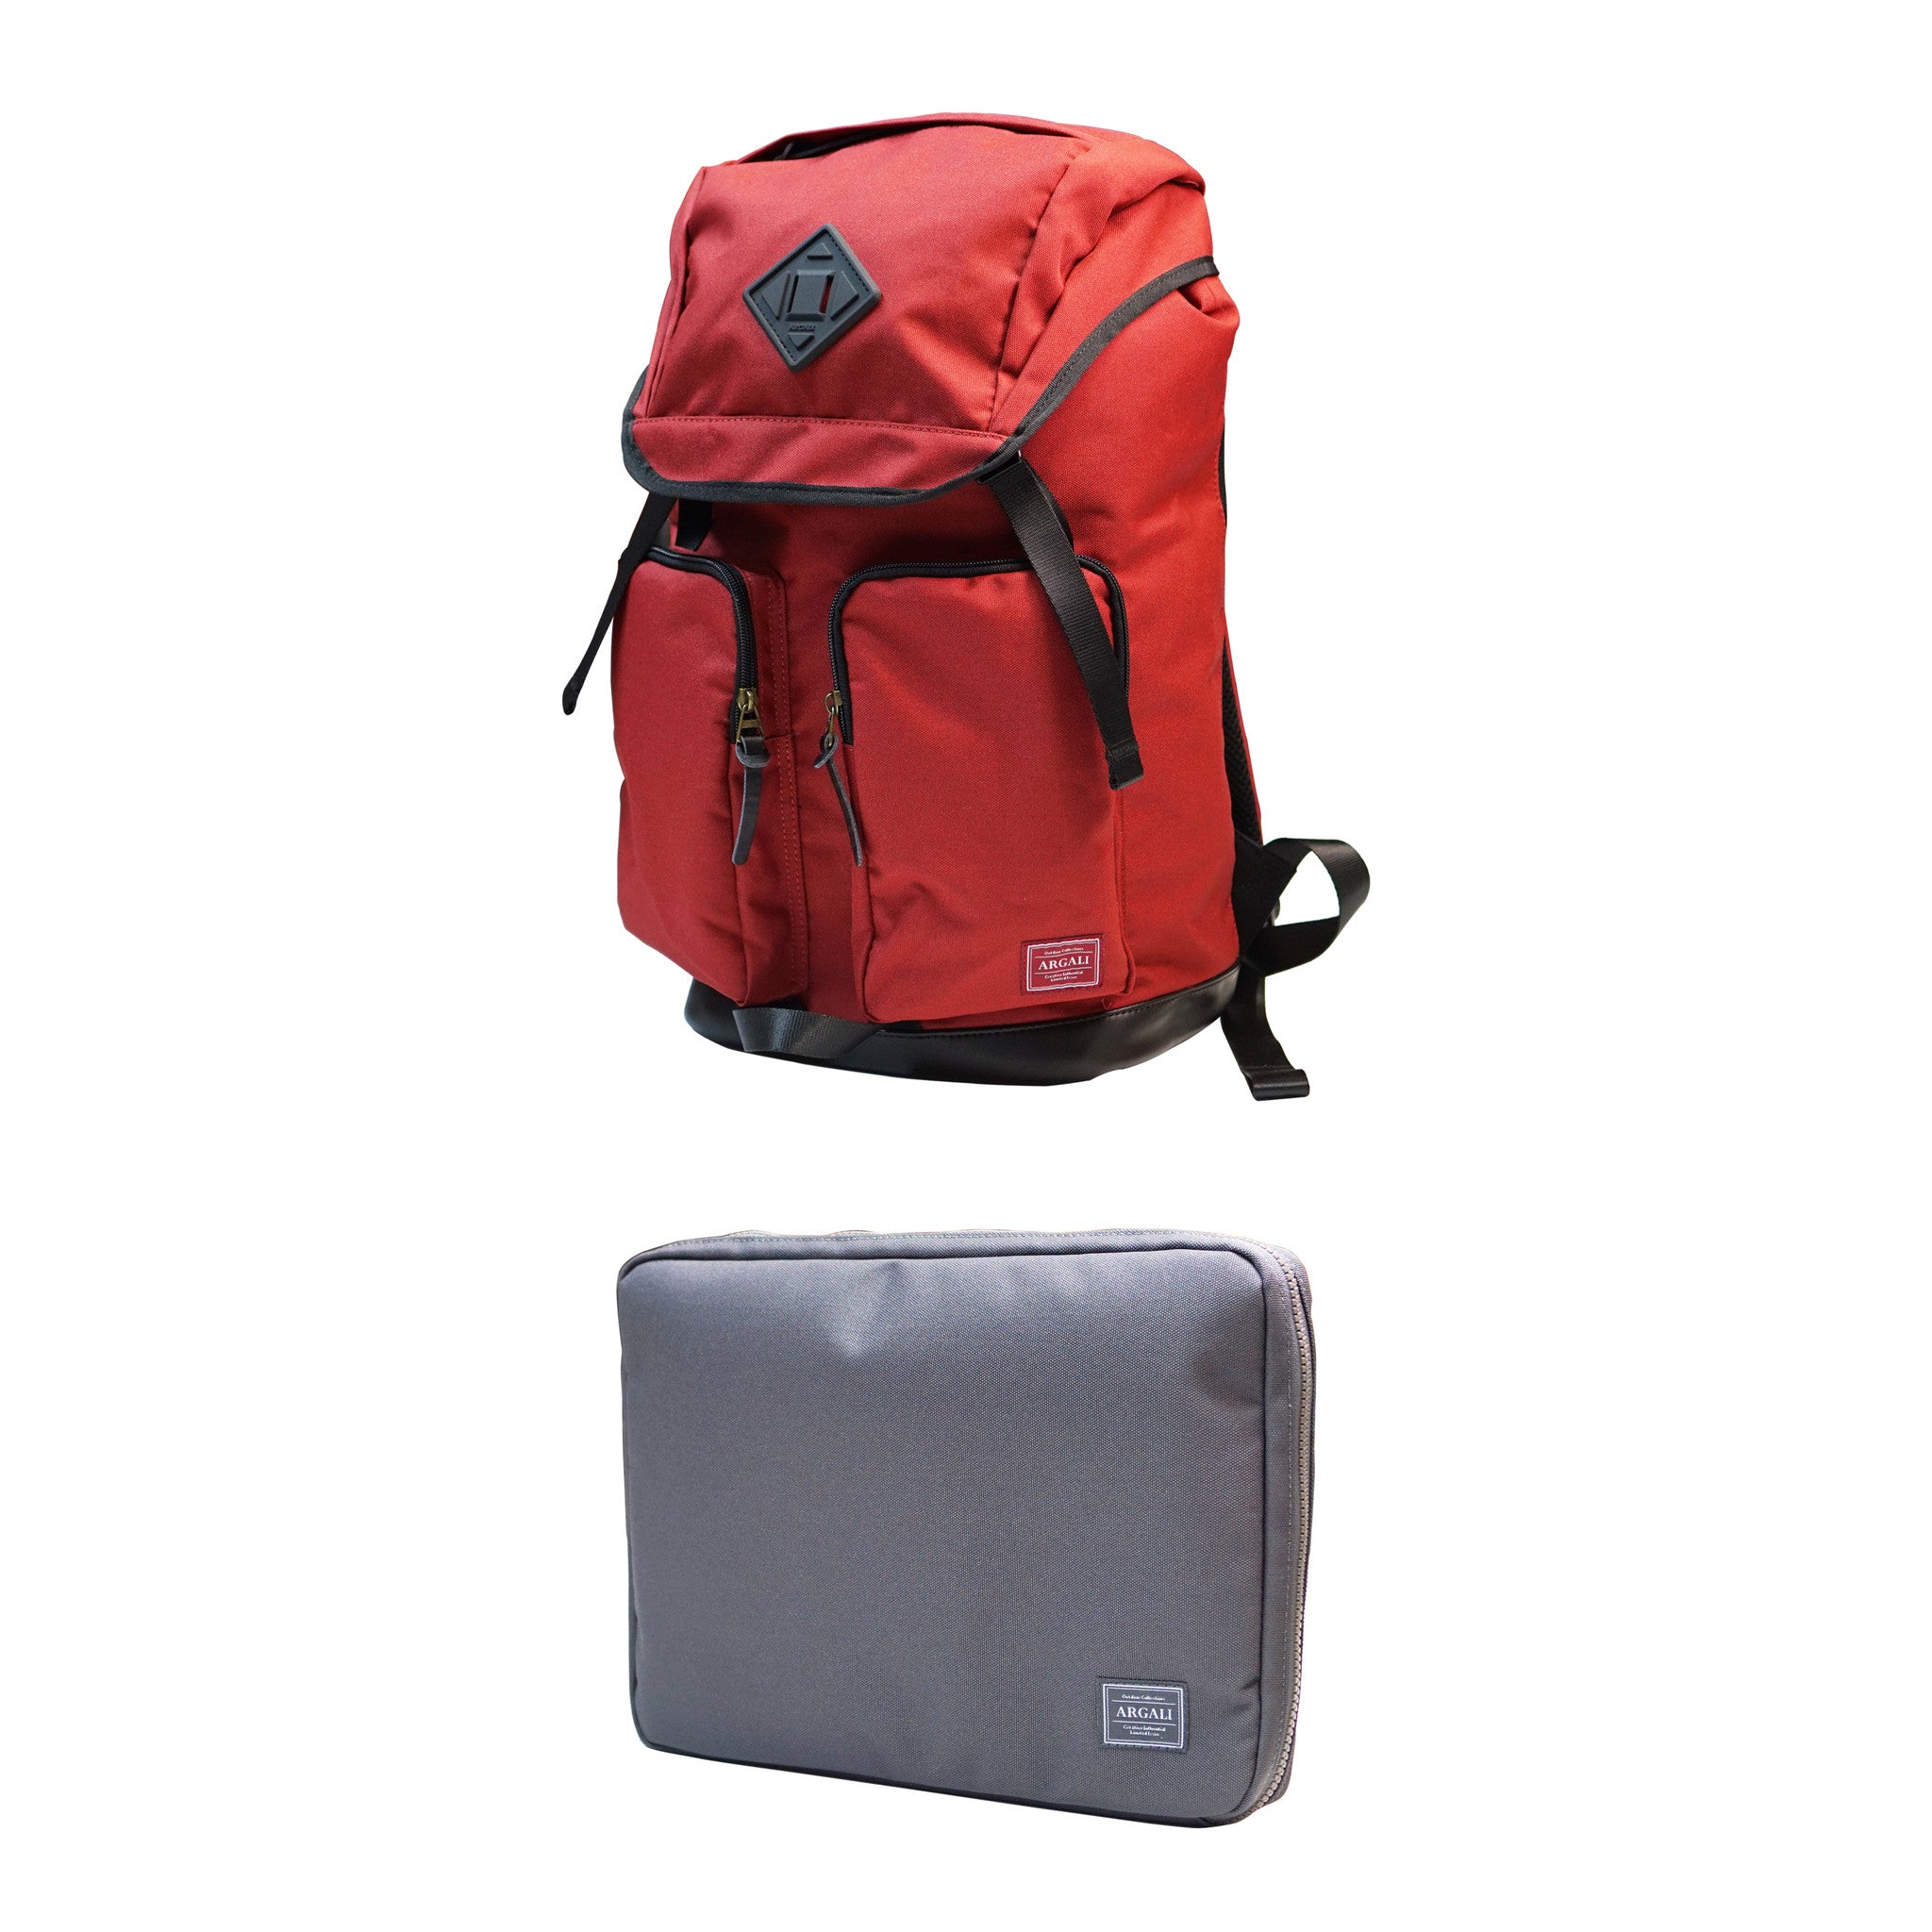 Racoon Backpack + Dhole Laptop Case